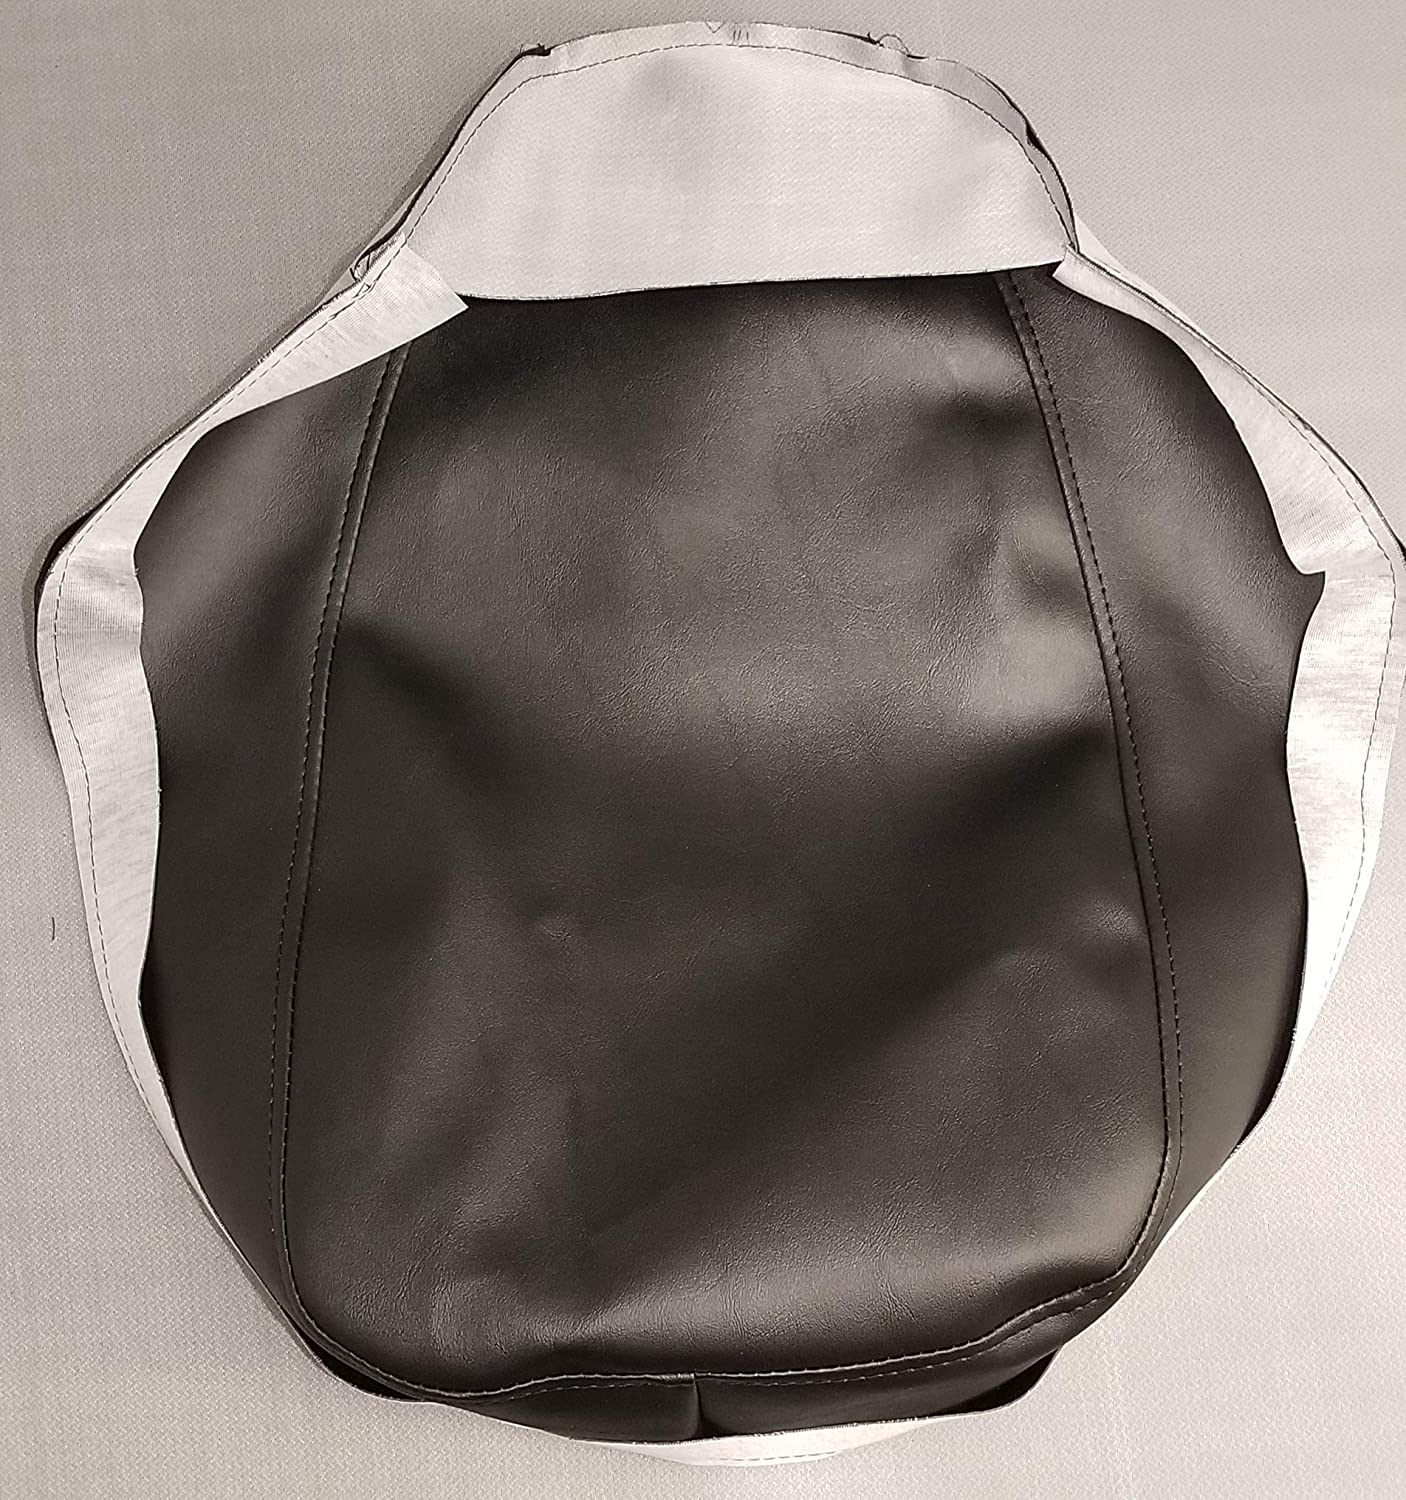 1985 ATC 250 1986 1987 FitCovers black replacement seat cover for HONDA ATC250ES BIG RED